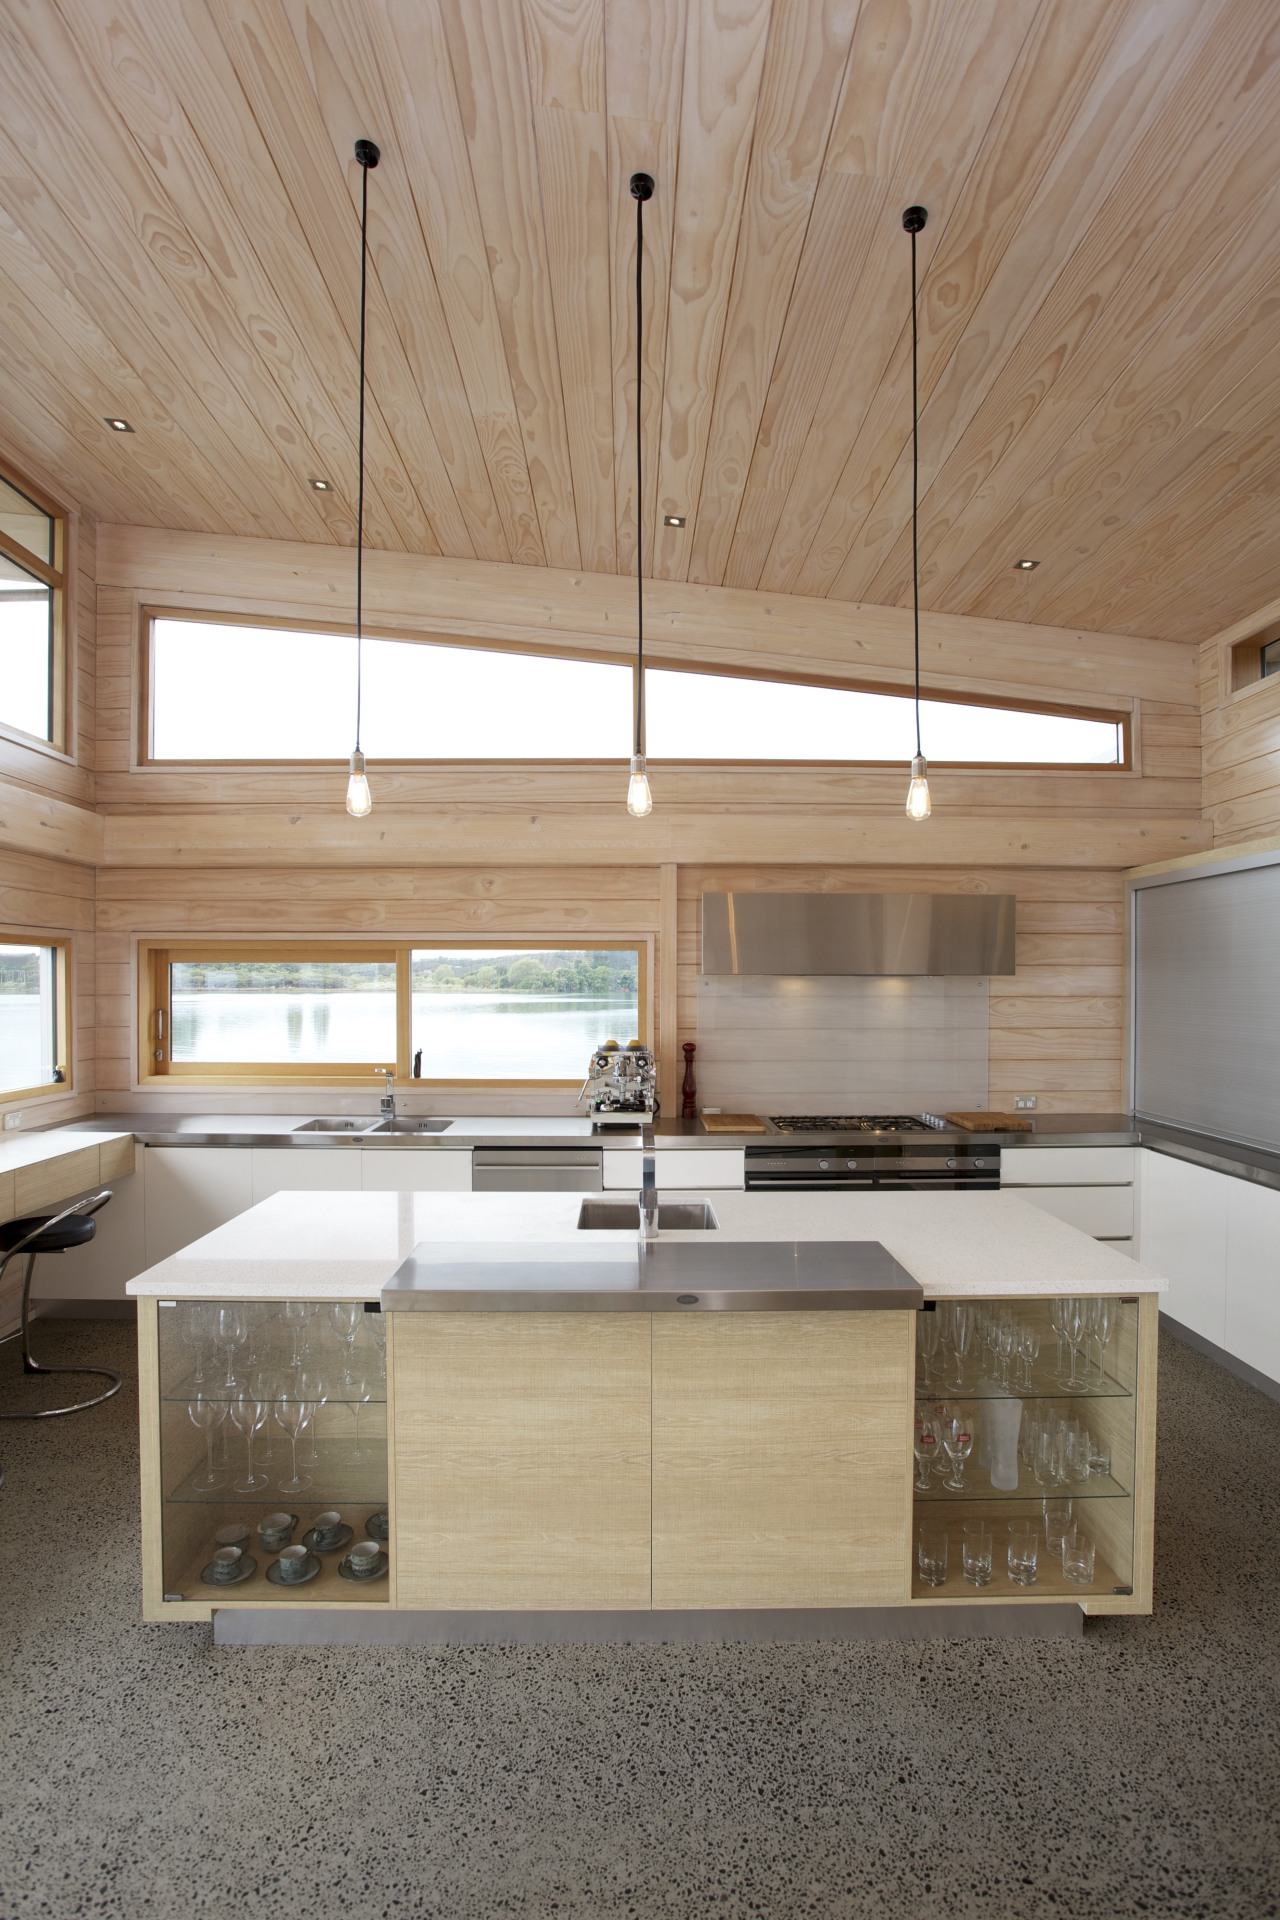 Irene James kitchen in Lockwood house architecture, cabinetry, ceiling, countertop, daylighting, floor, hardwood, home, house, interior design, kitchen, plywood, real estate, wood, gray, brown